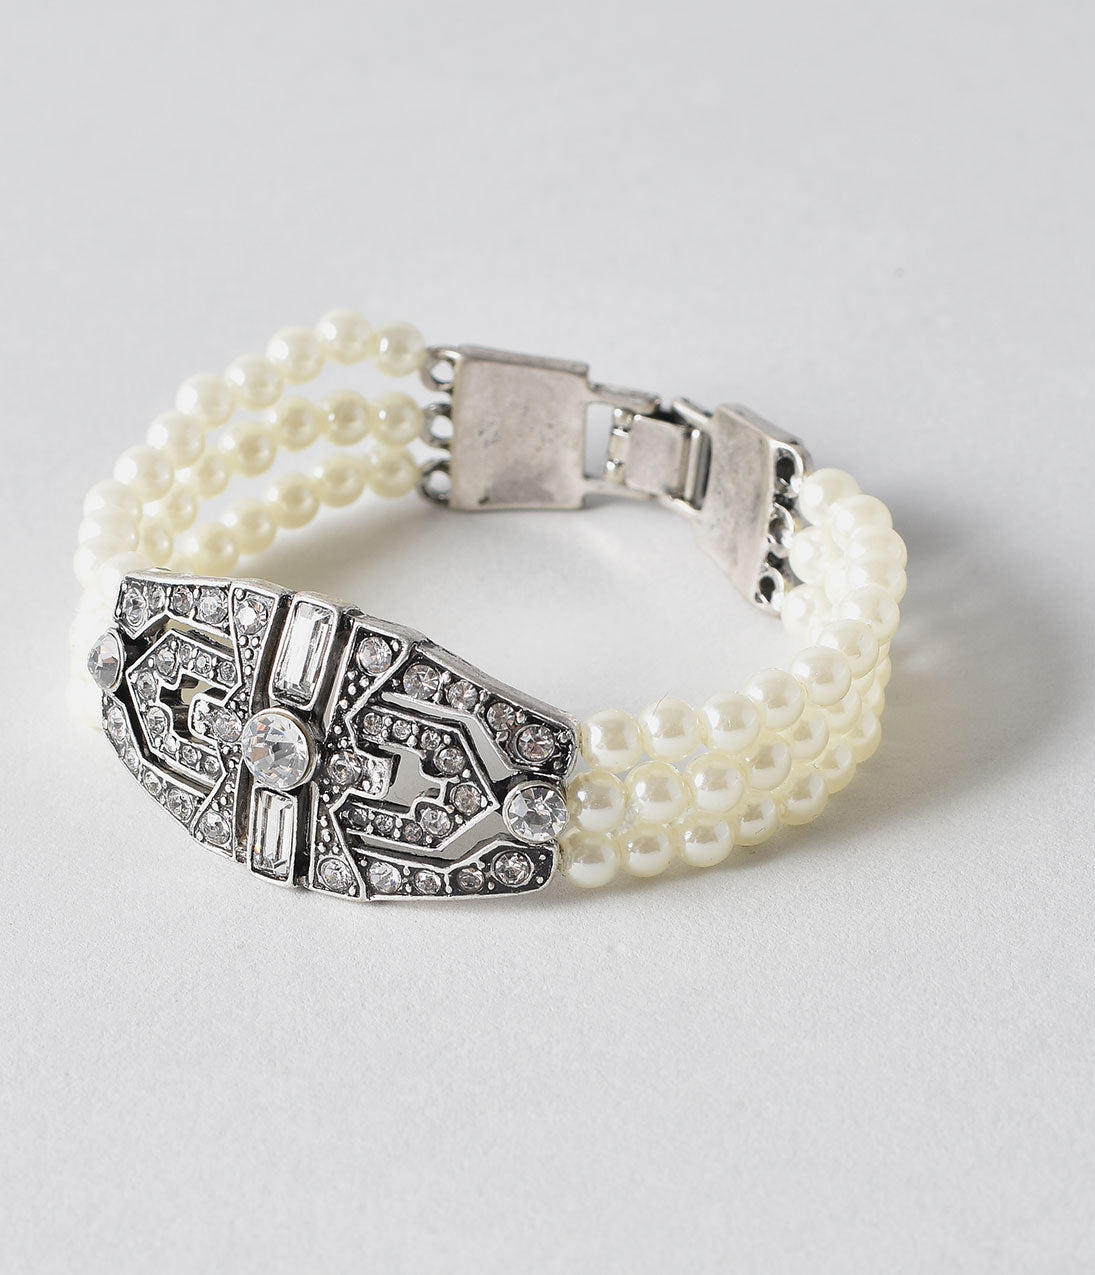 1930s Outfit Ideas for Women Vintage Style Ivory Pearl  Silver Crystal Rhinestone Bracelet $30.00 AT vintagedancer.com